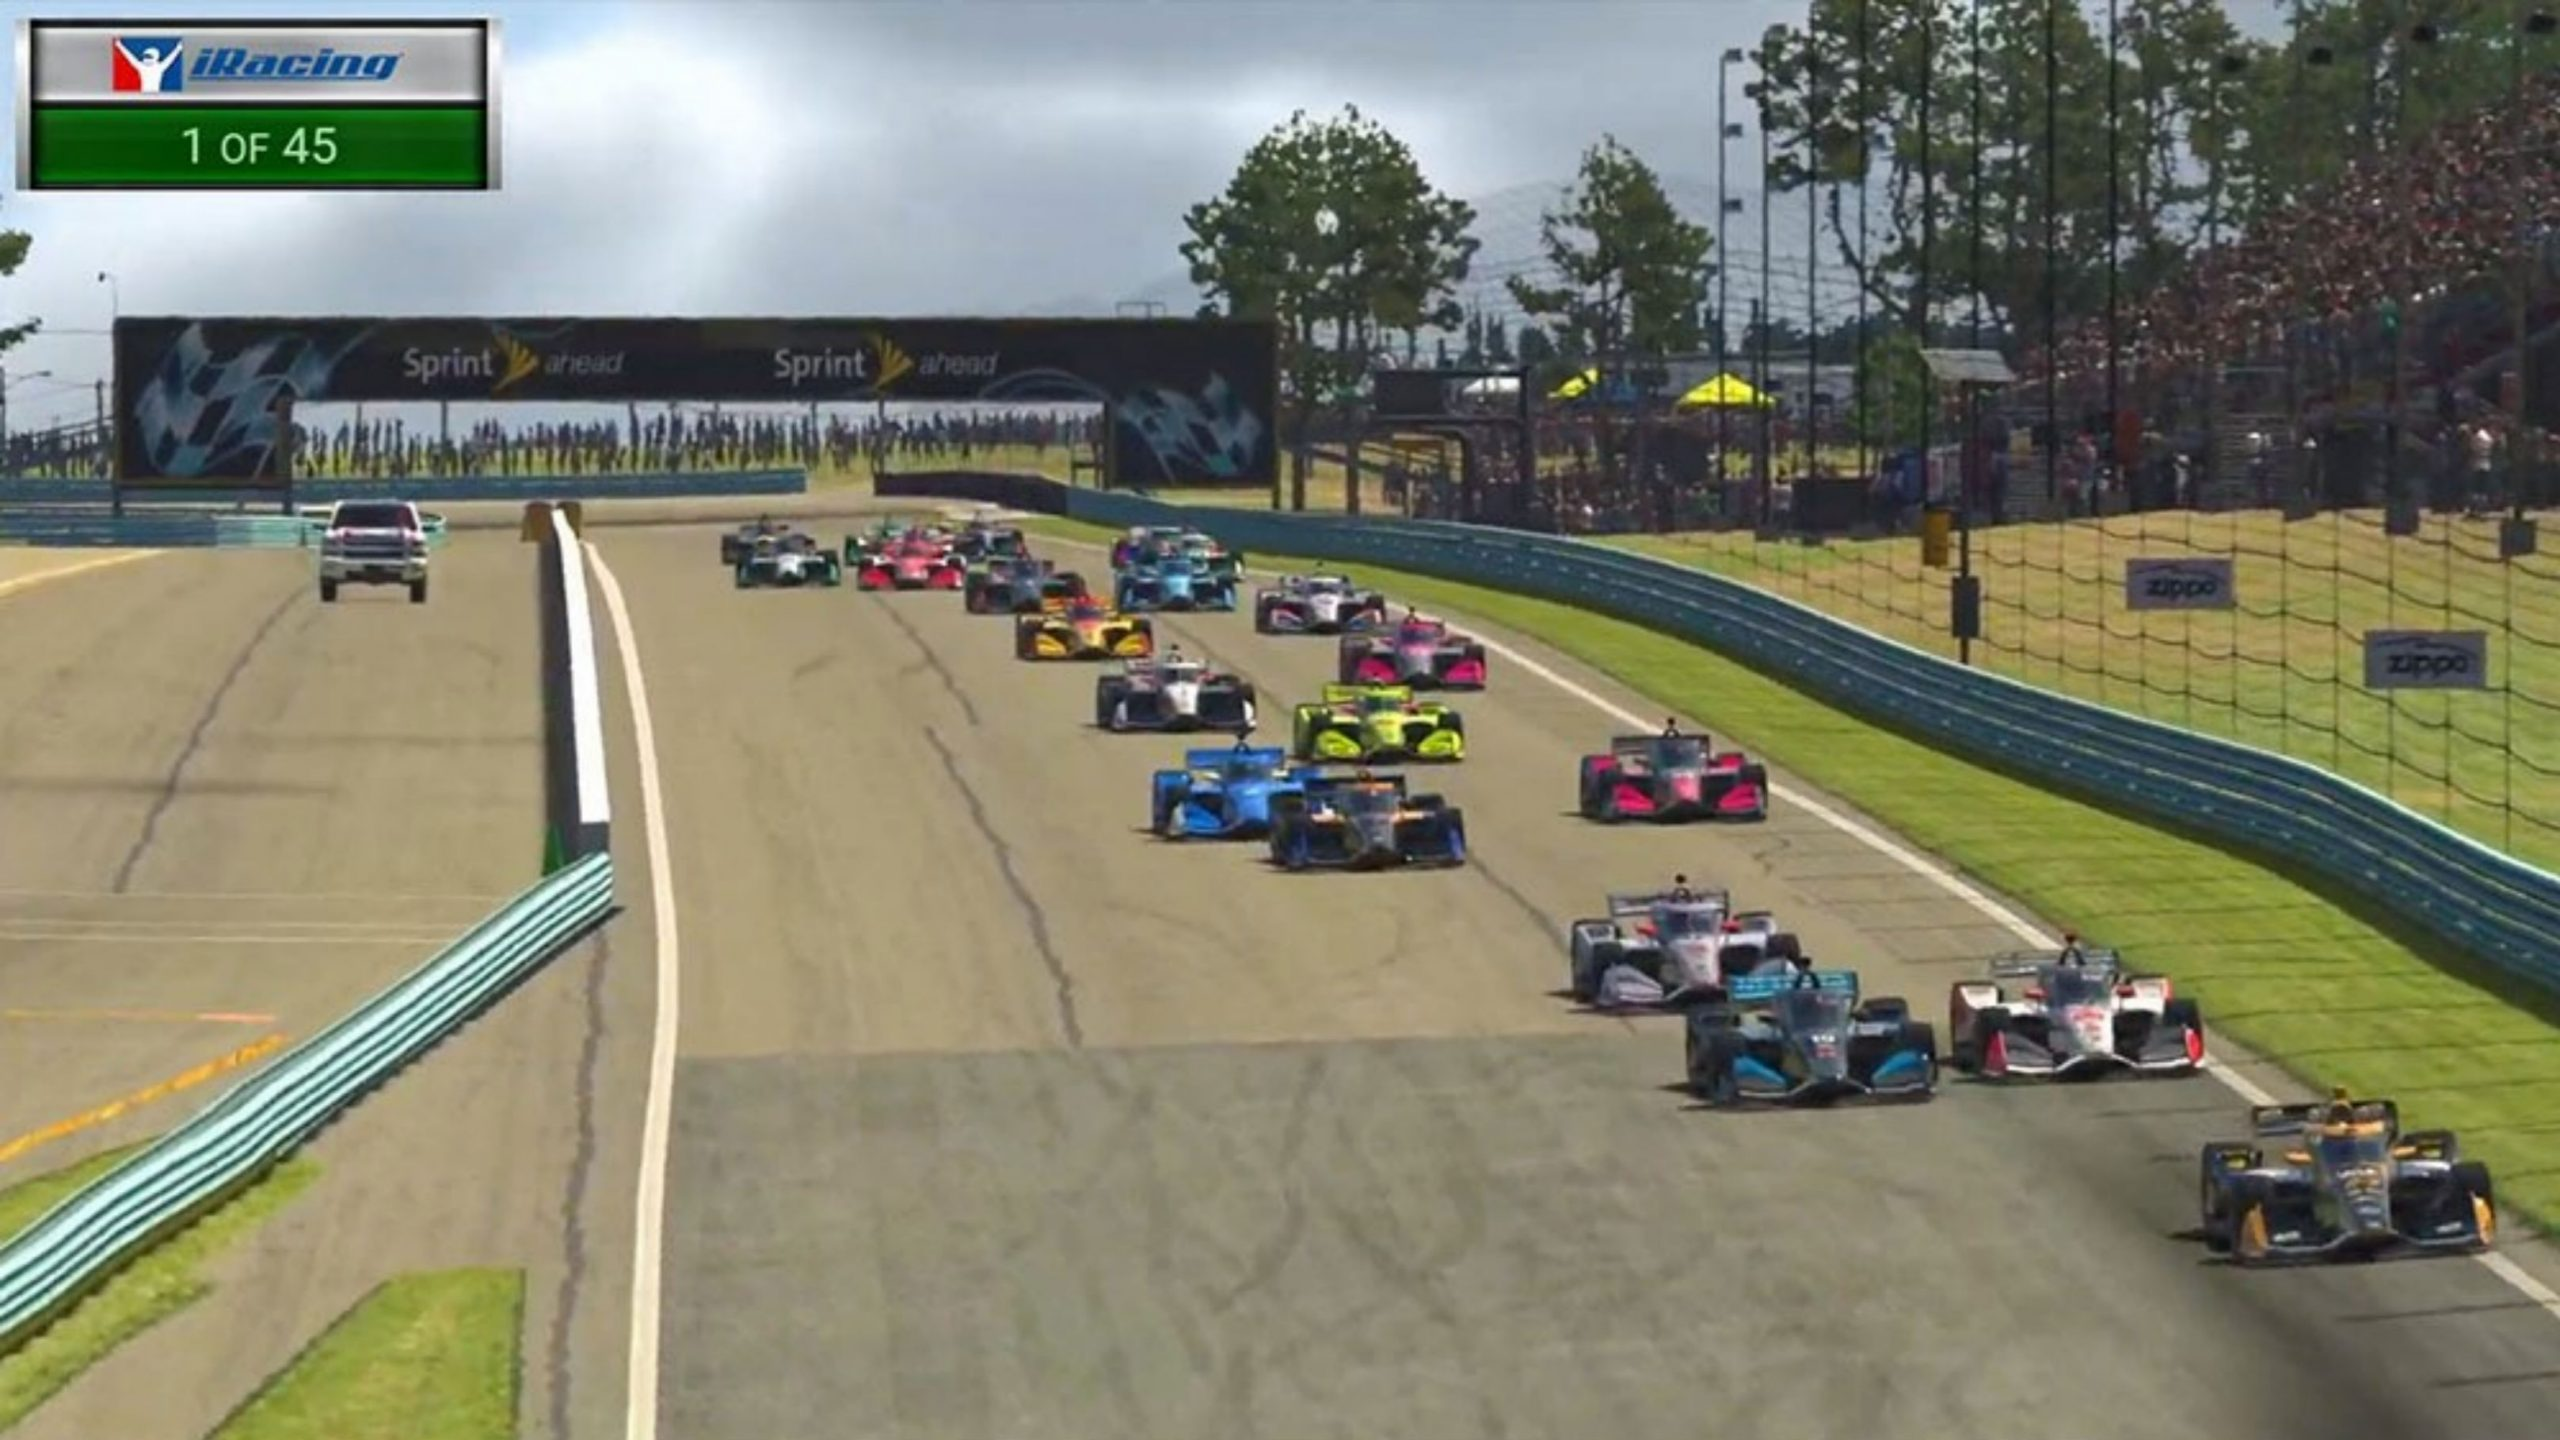 Cancel Auto Racing in 2020